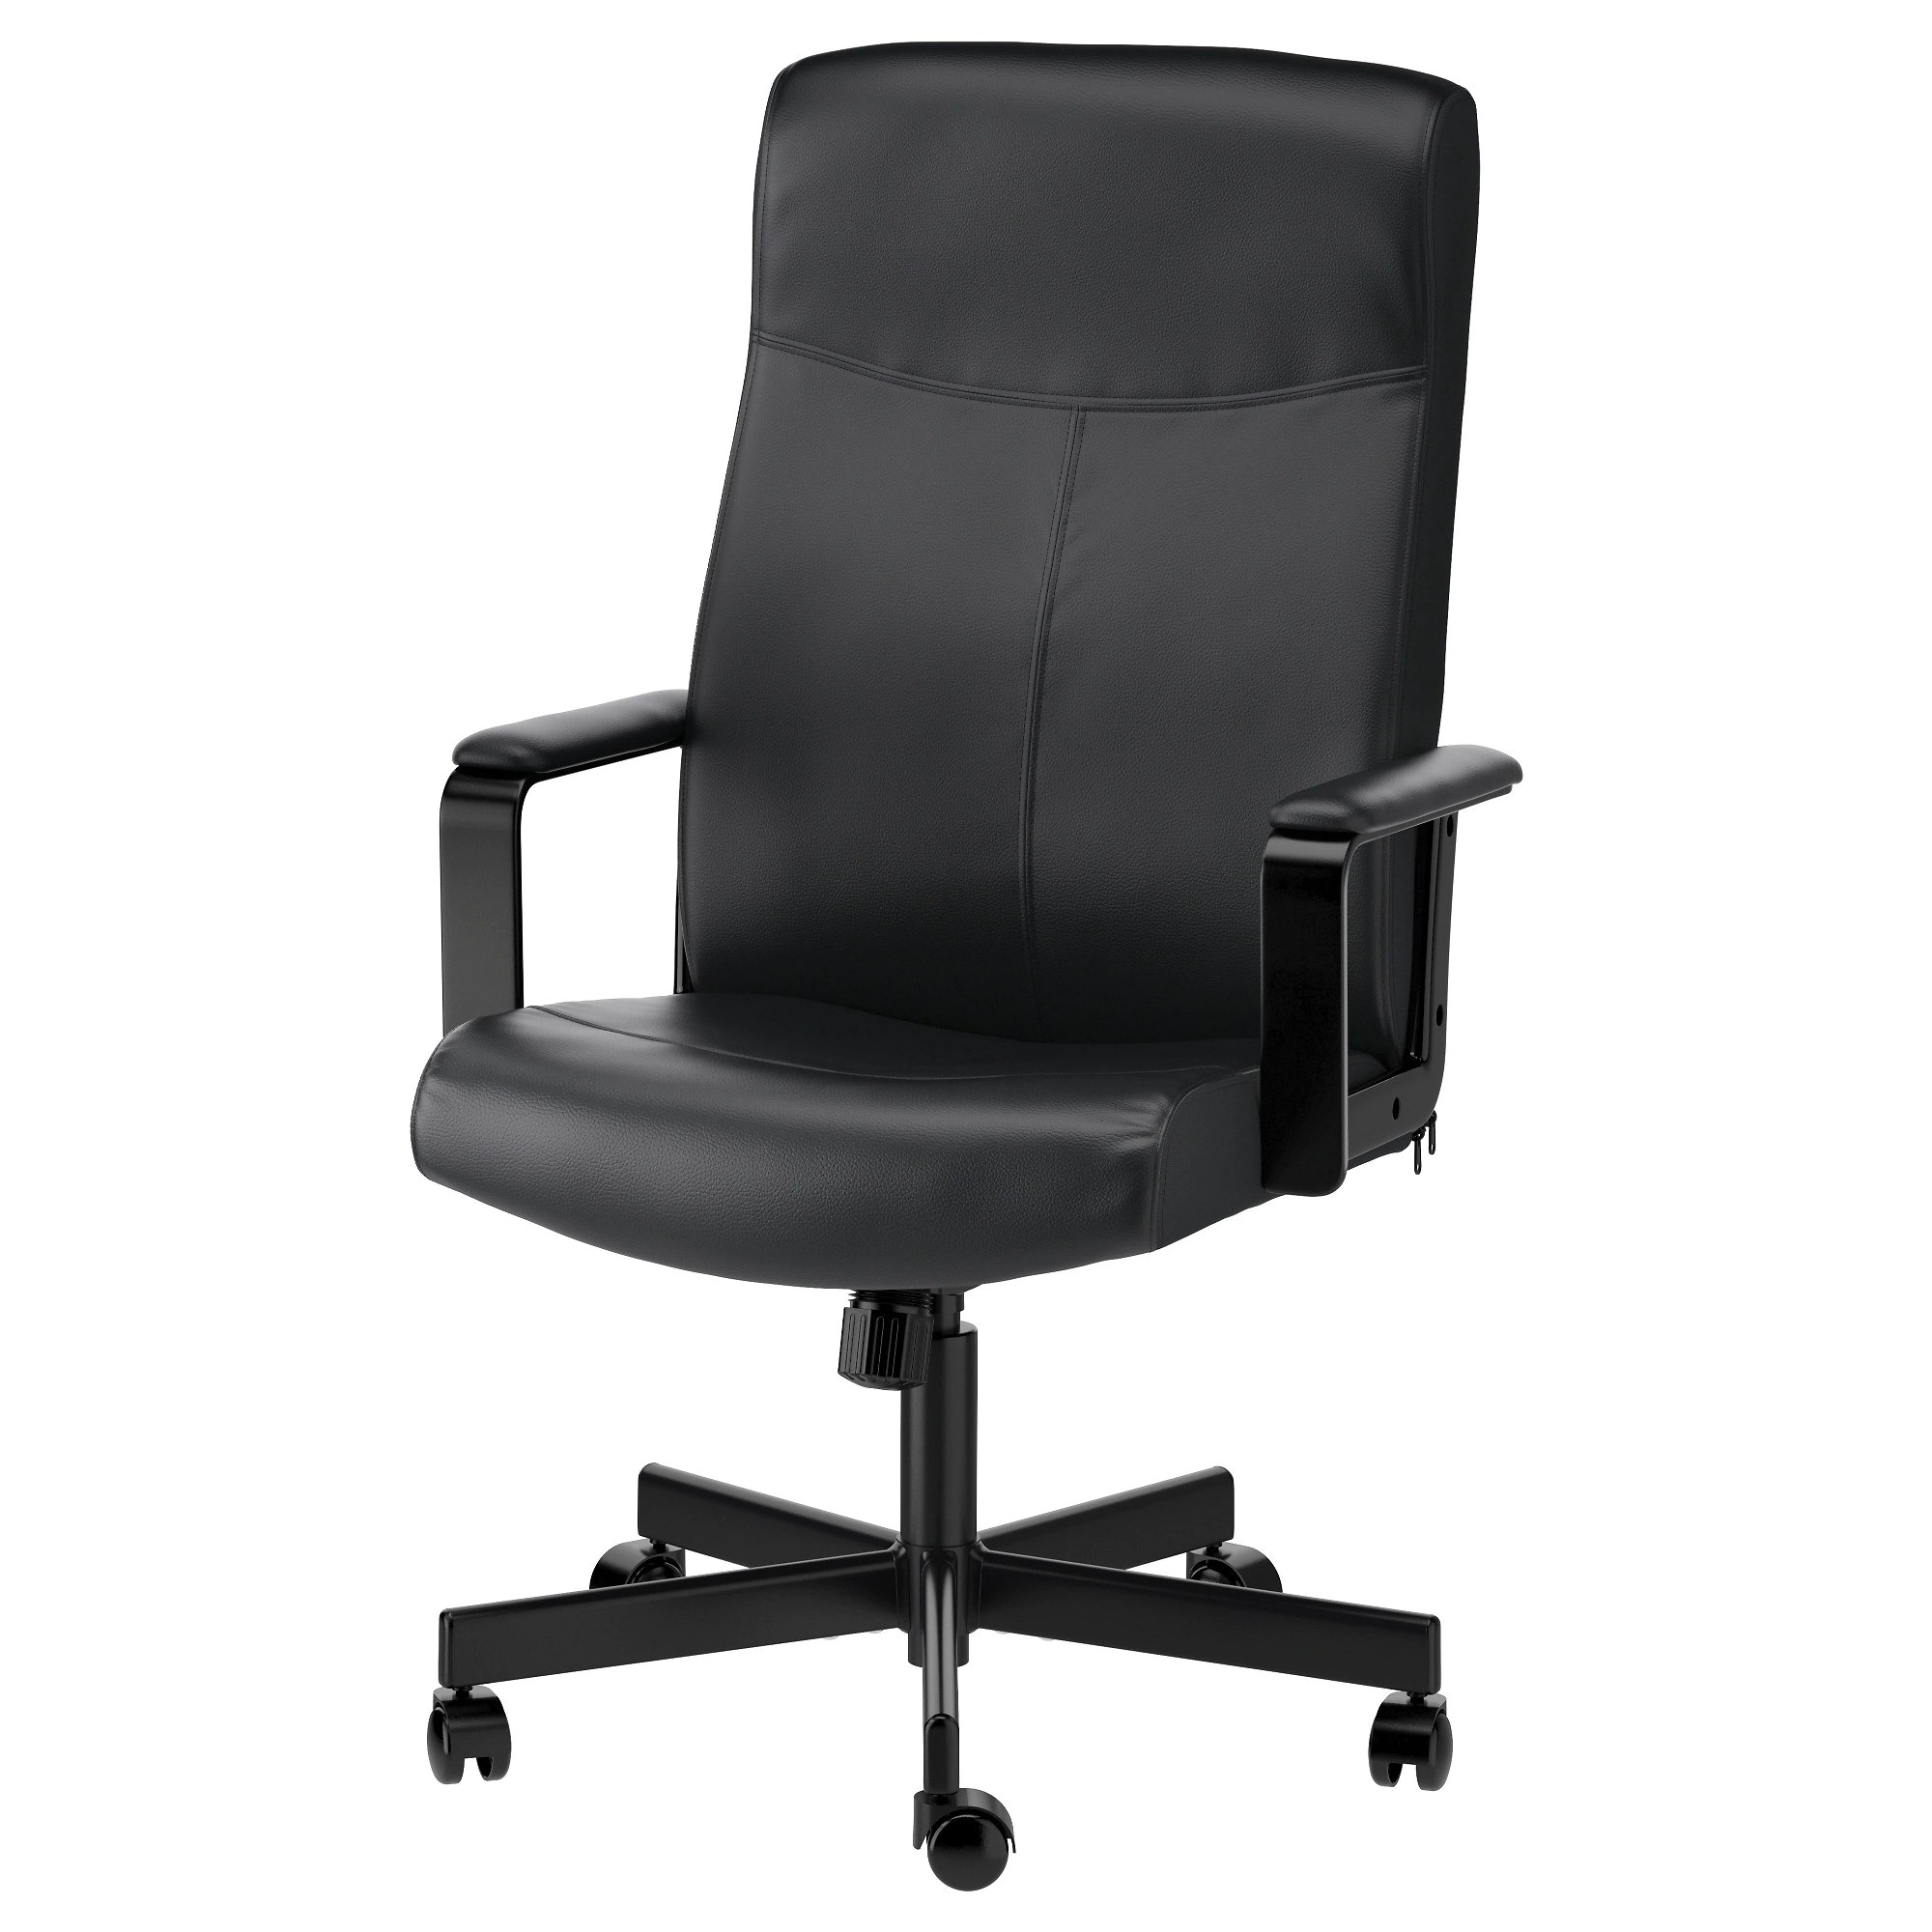 swivel kitchen chairs MILLBERGET swivel chair Bomstad black Tested for lb 8 oz Depth 25